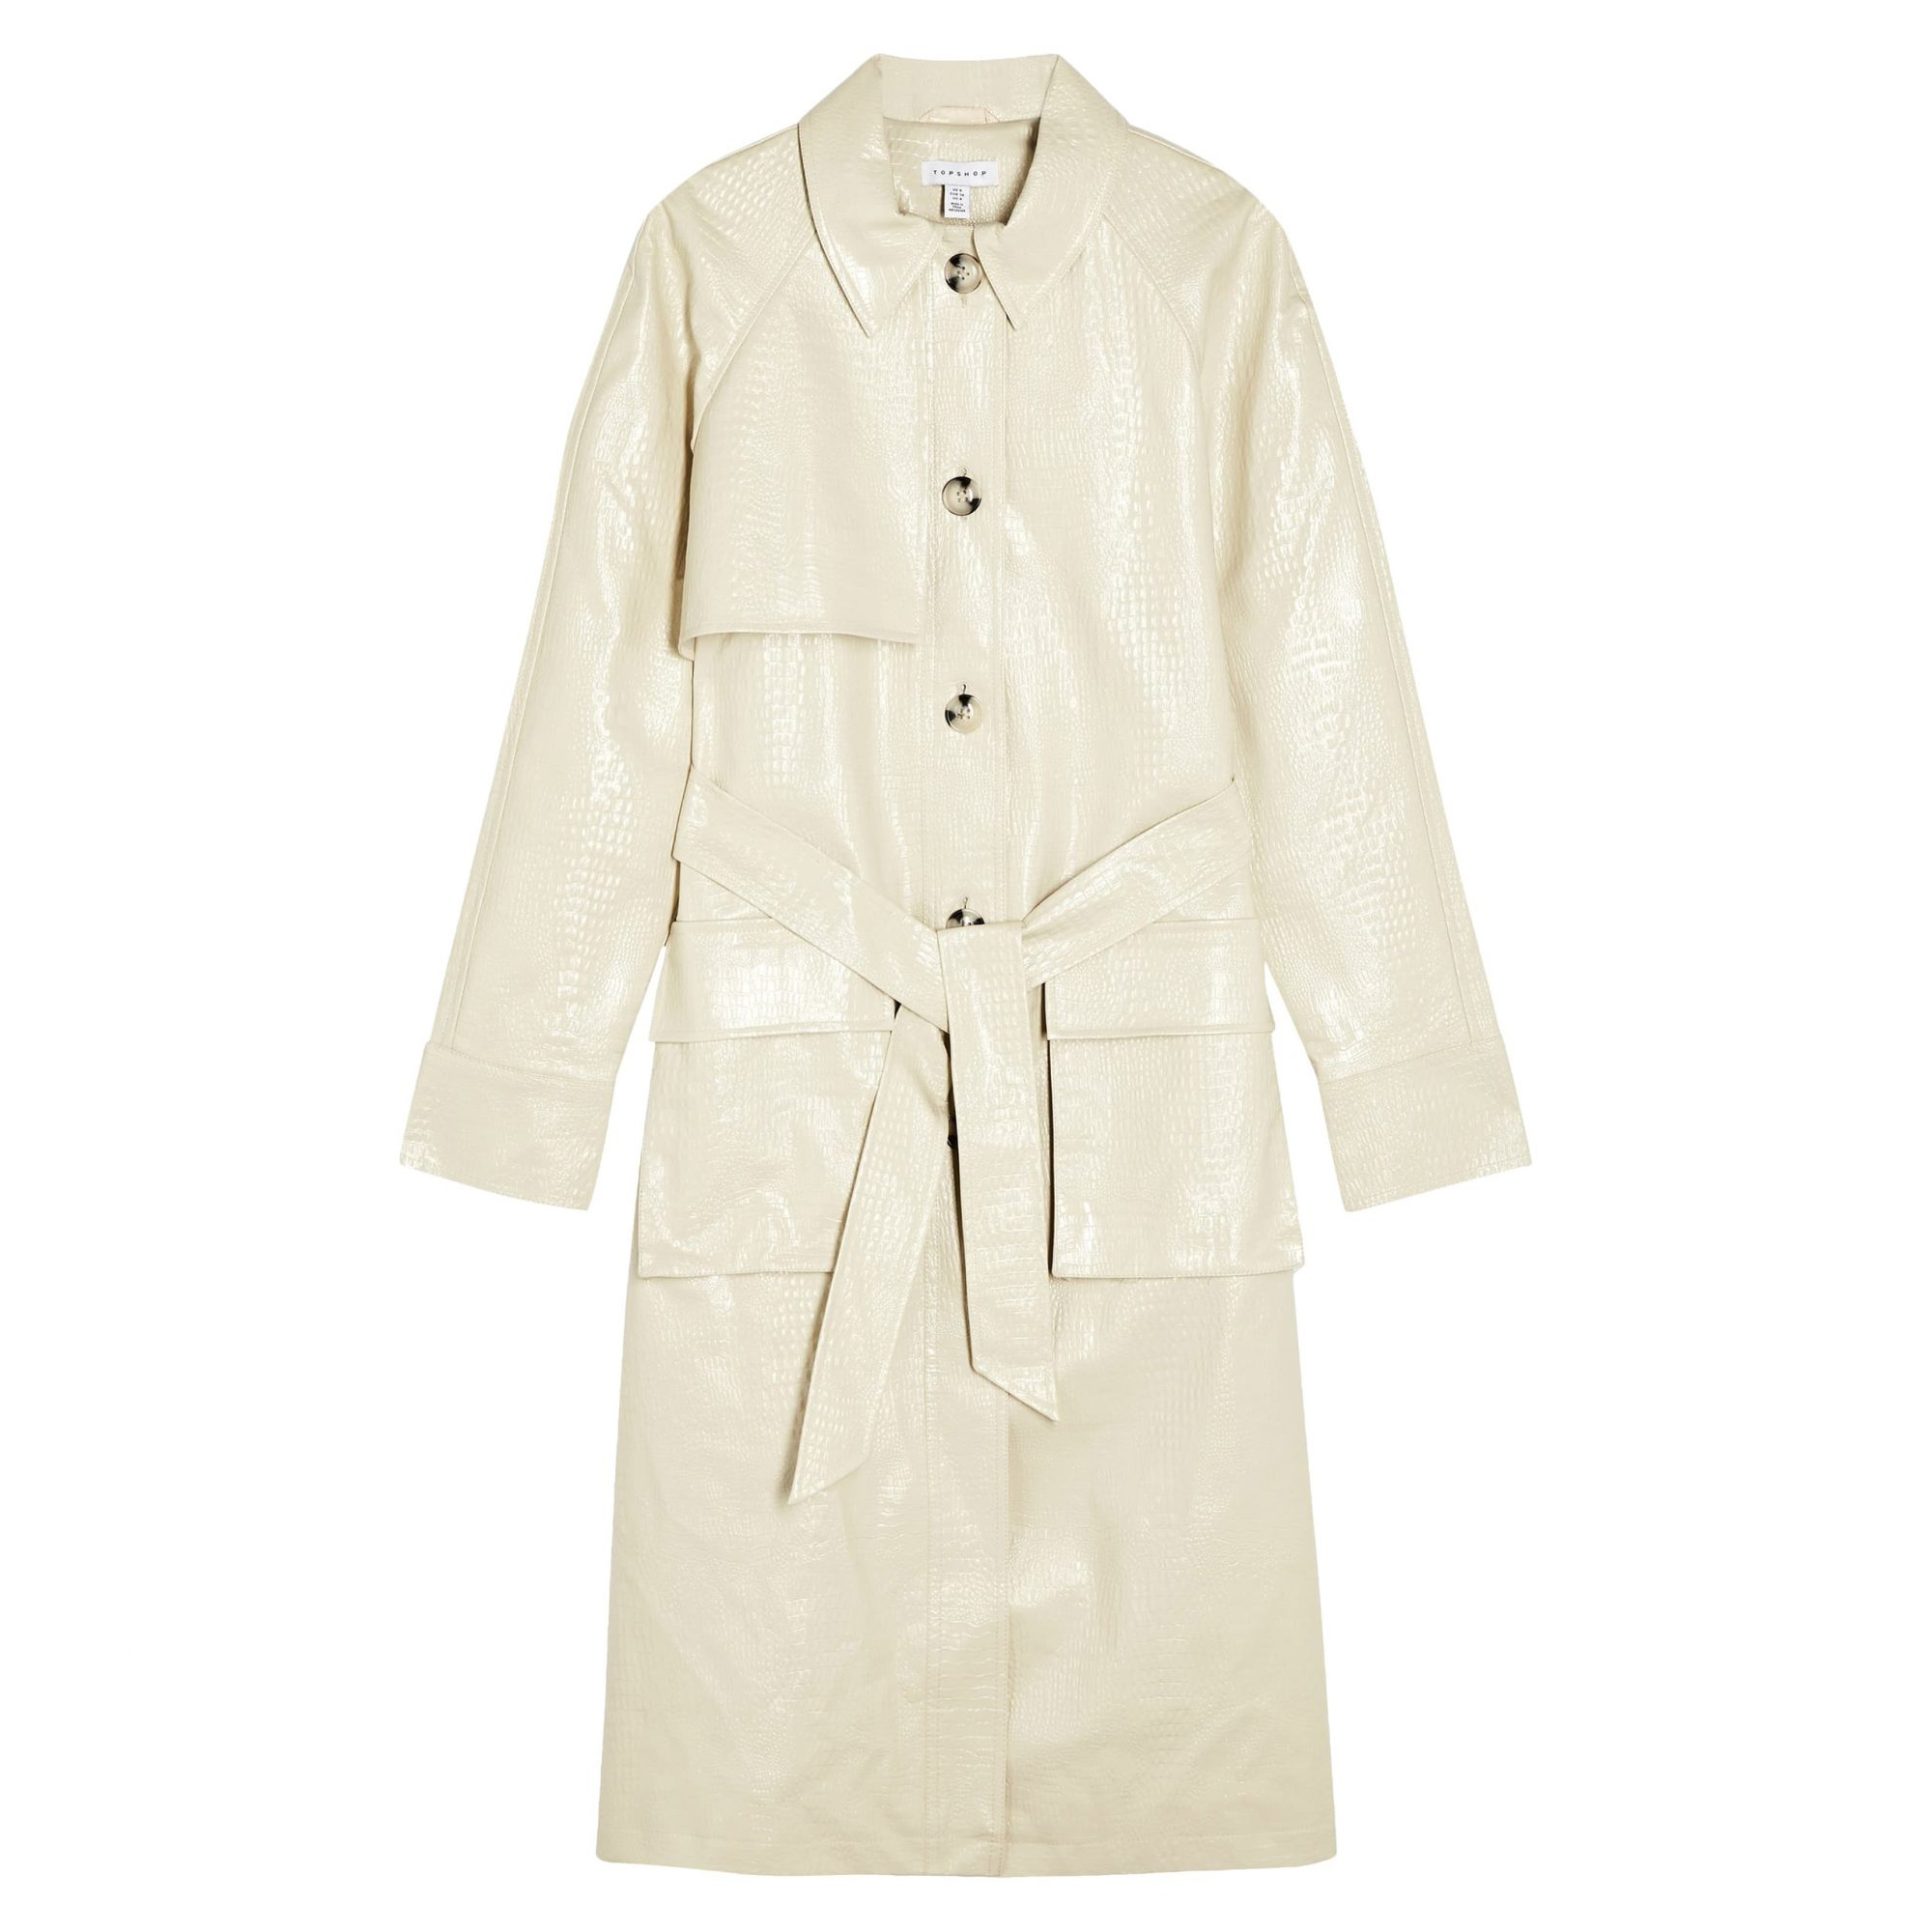 Topshop Croc Embossed Faux Leather Trench Coat